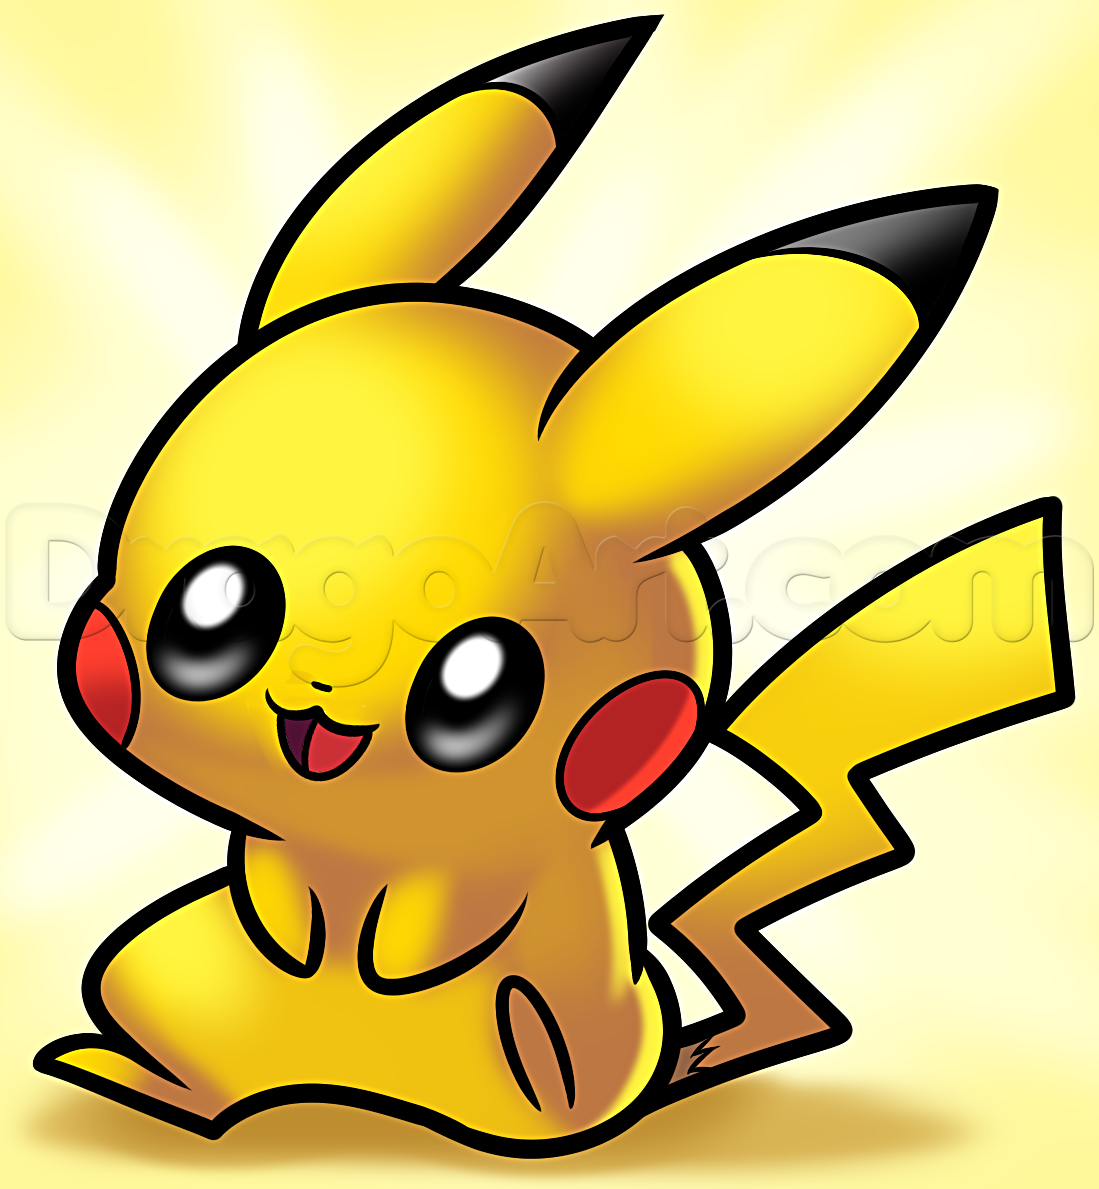 1099x1189 How To Draw Baby Pikachu, Step By Step, Pokemon Characters, Anime